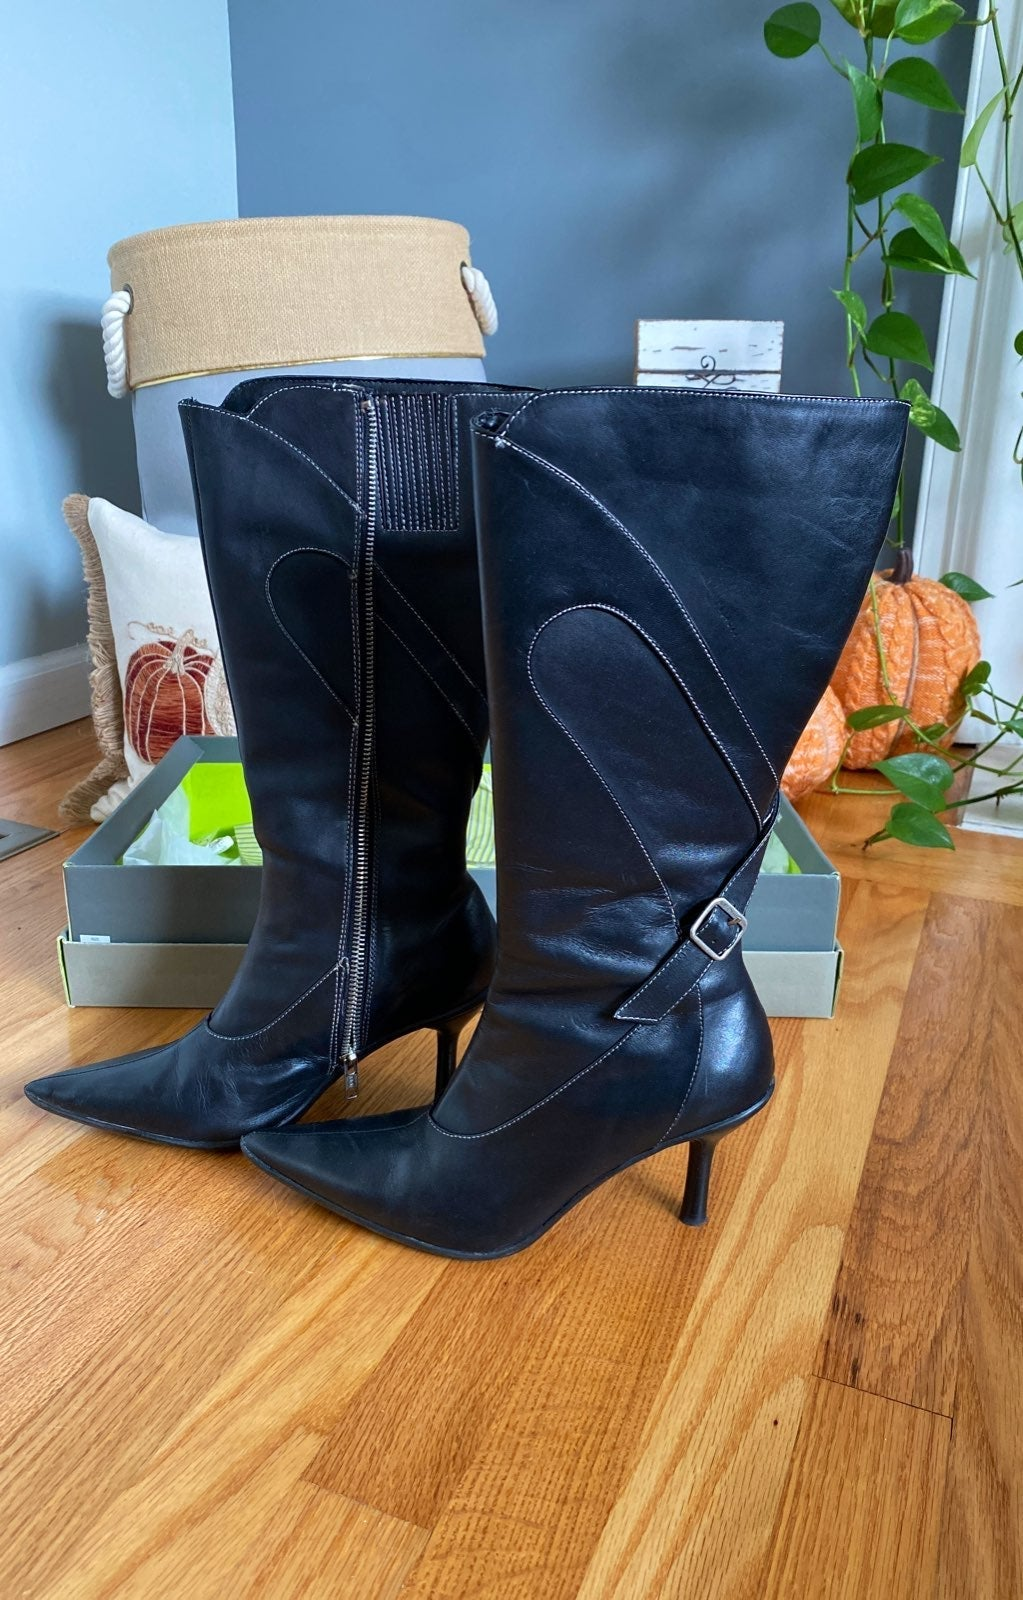 Kenneth Cole Leather Boots Size 7.5